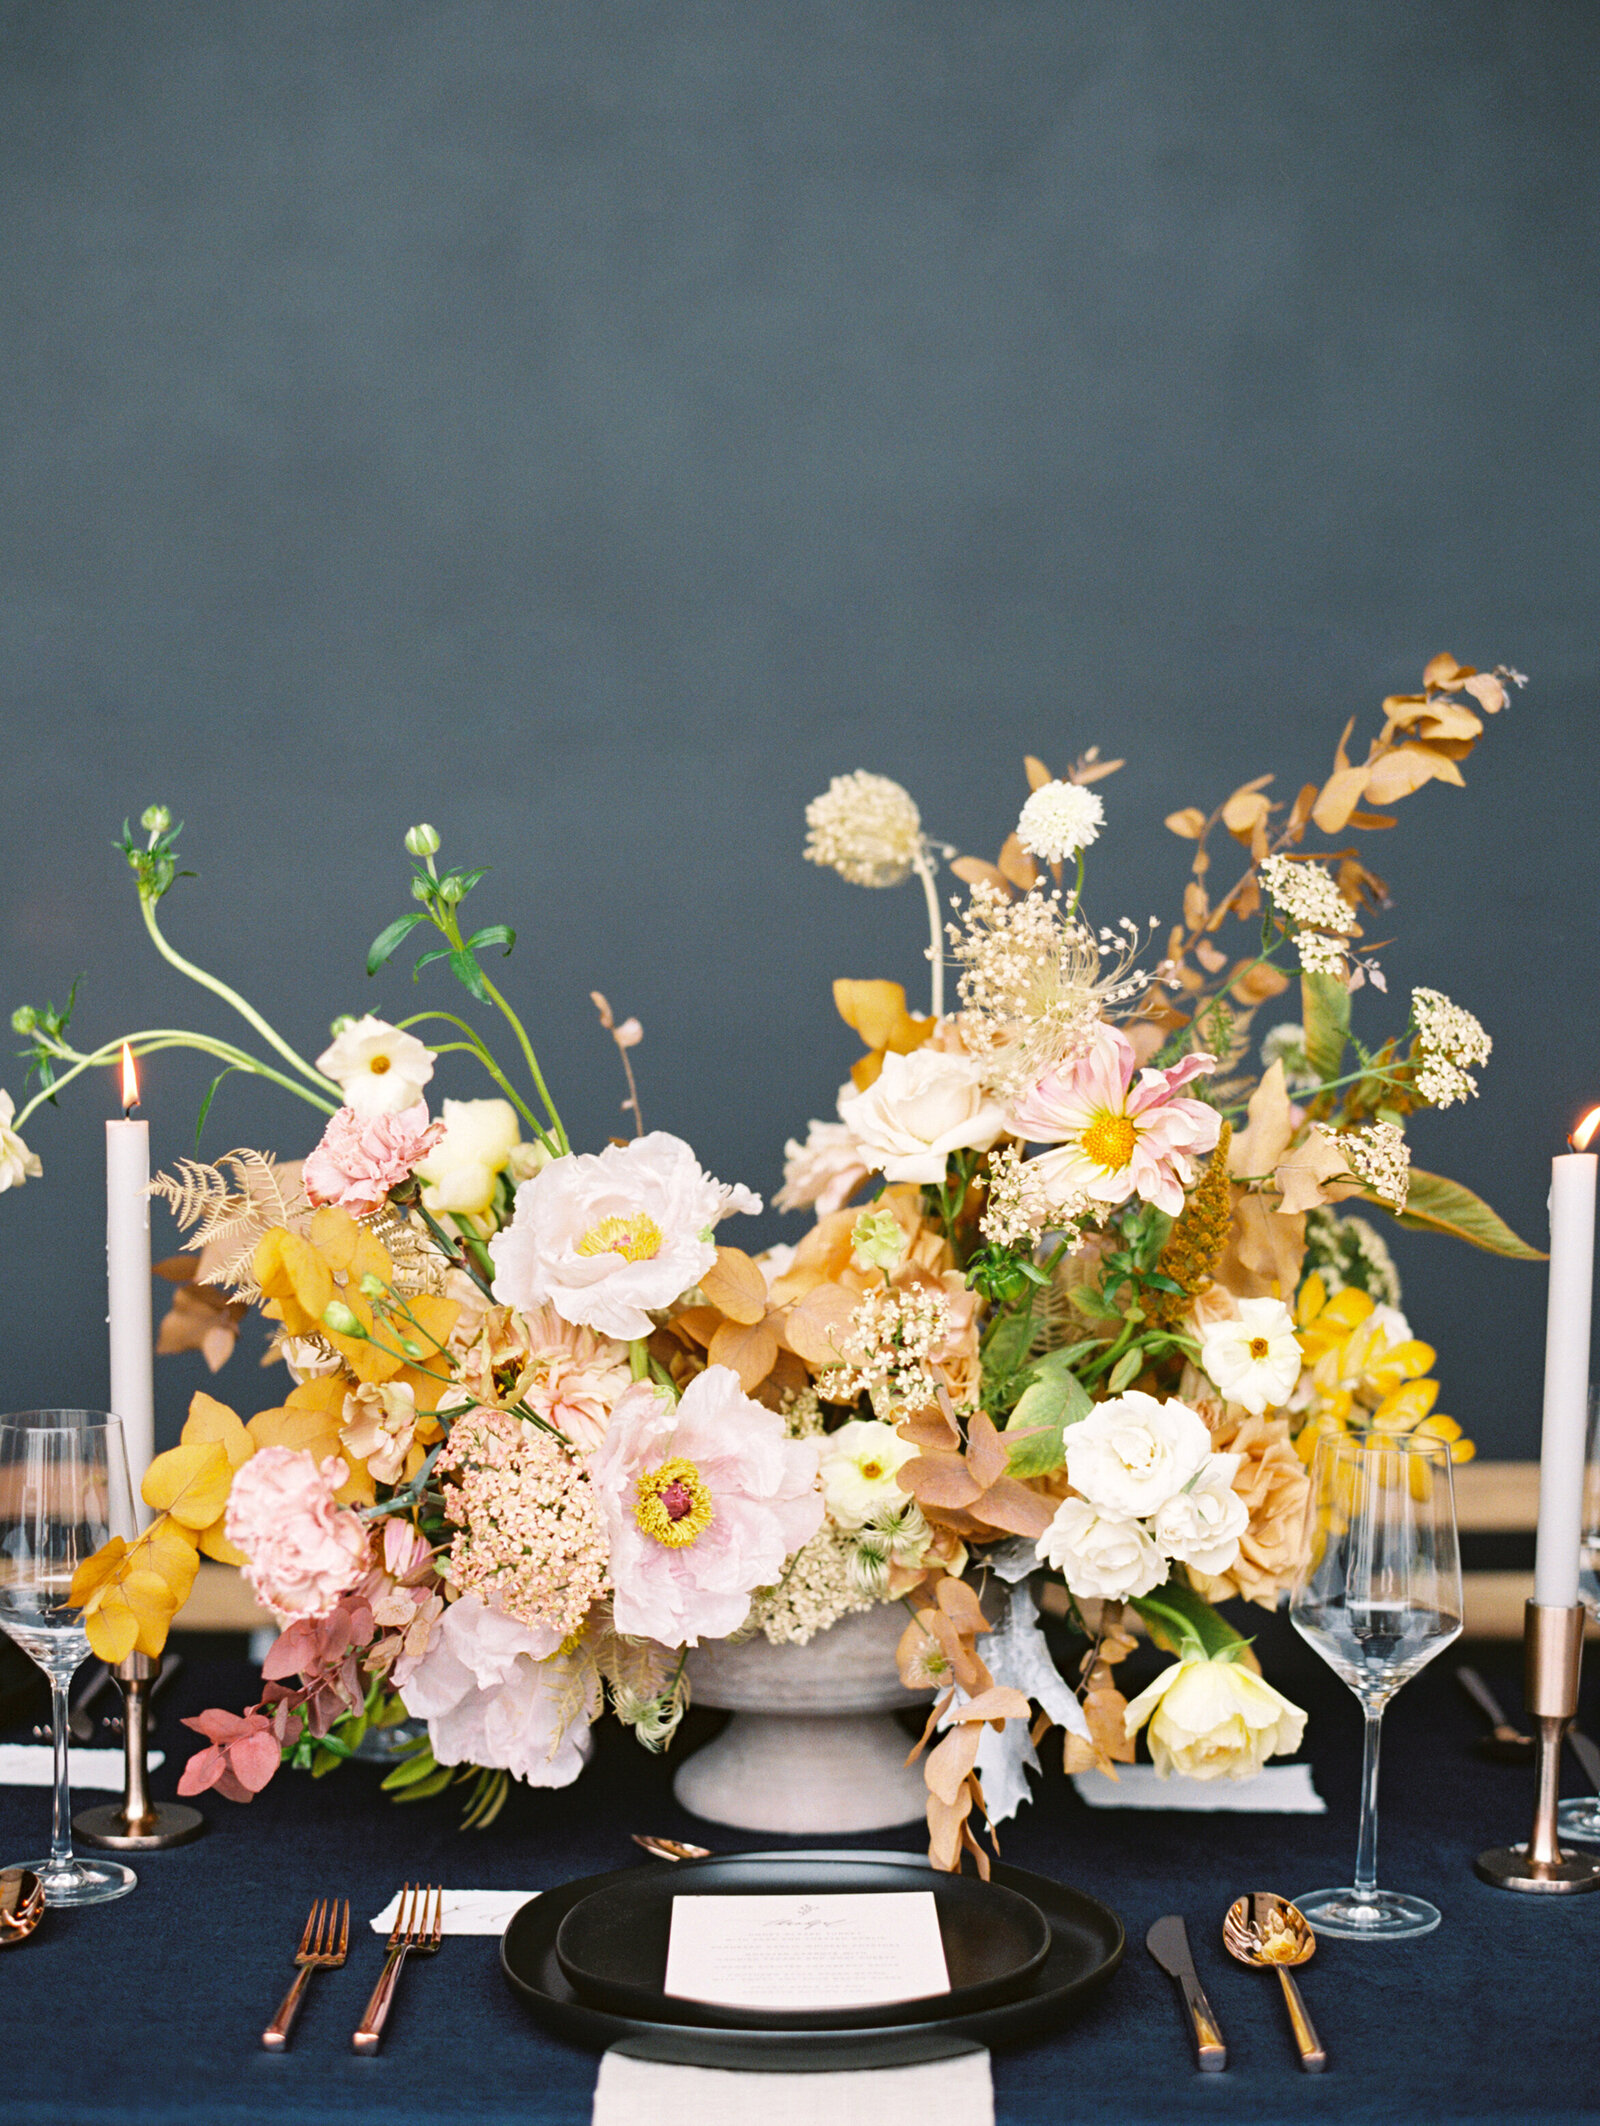 top-wedding-florist-max-owens-design-centerpiece